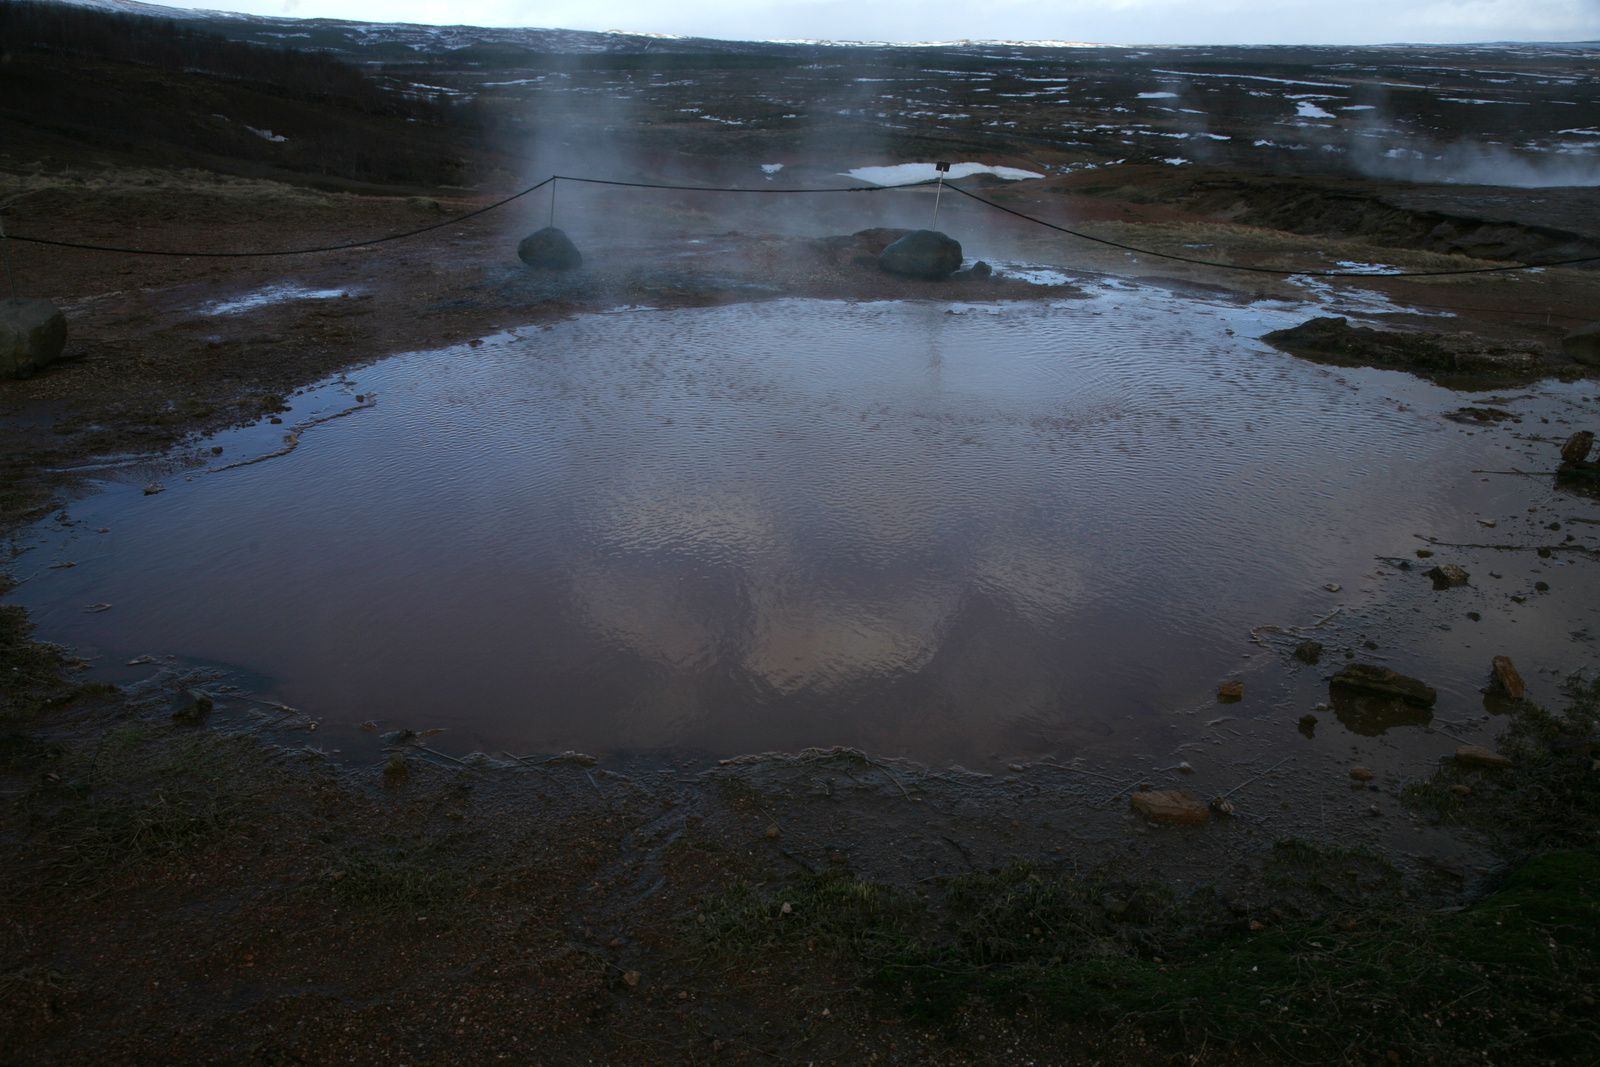 The Geysir geothermal field - Fata, hot springs - photo © 2015 Bernard Duyck